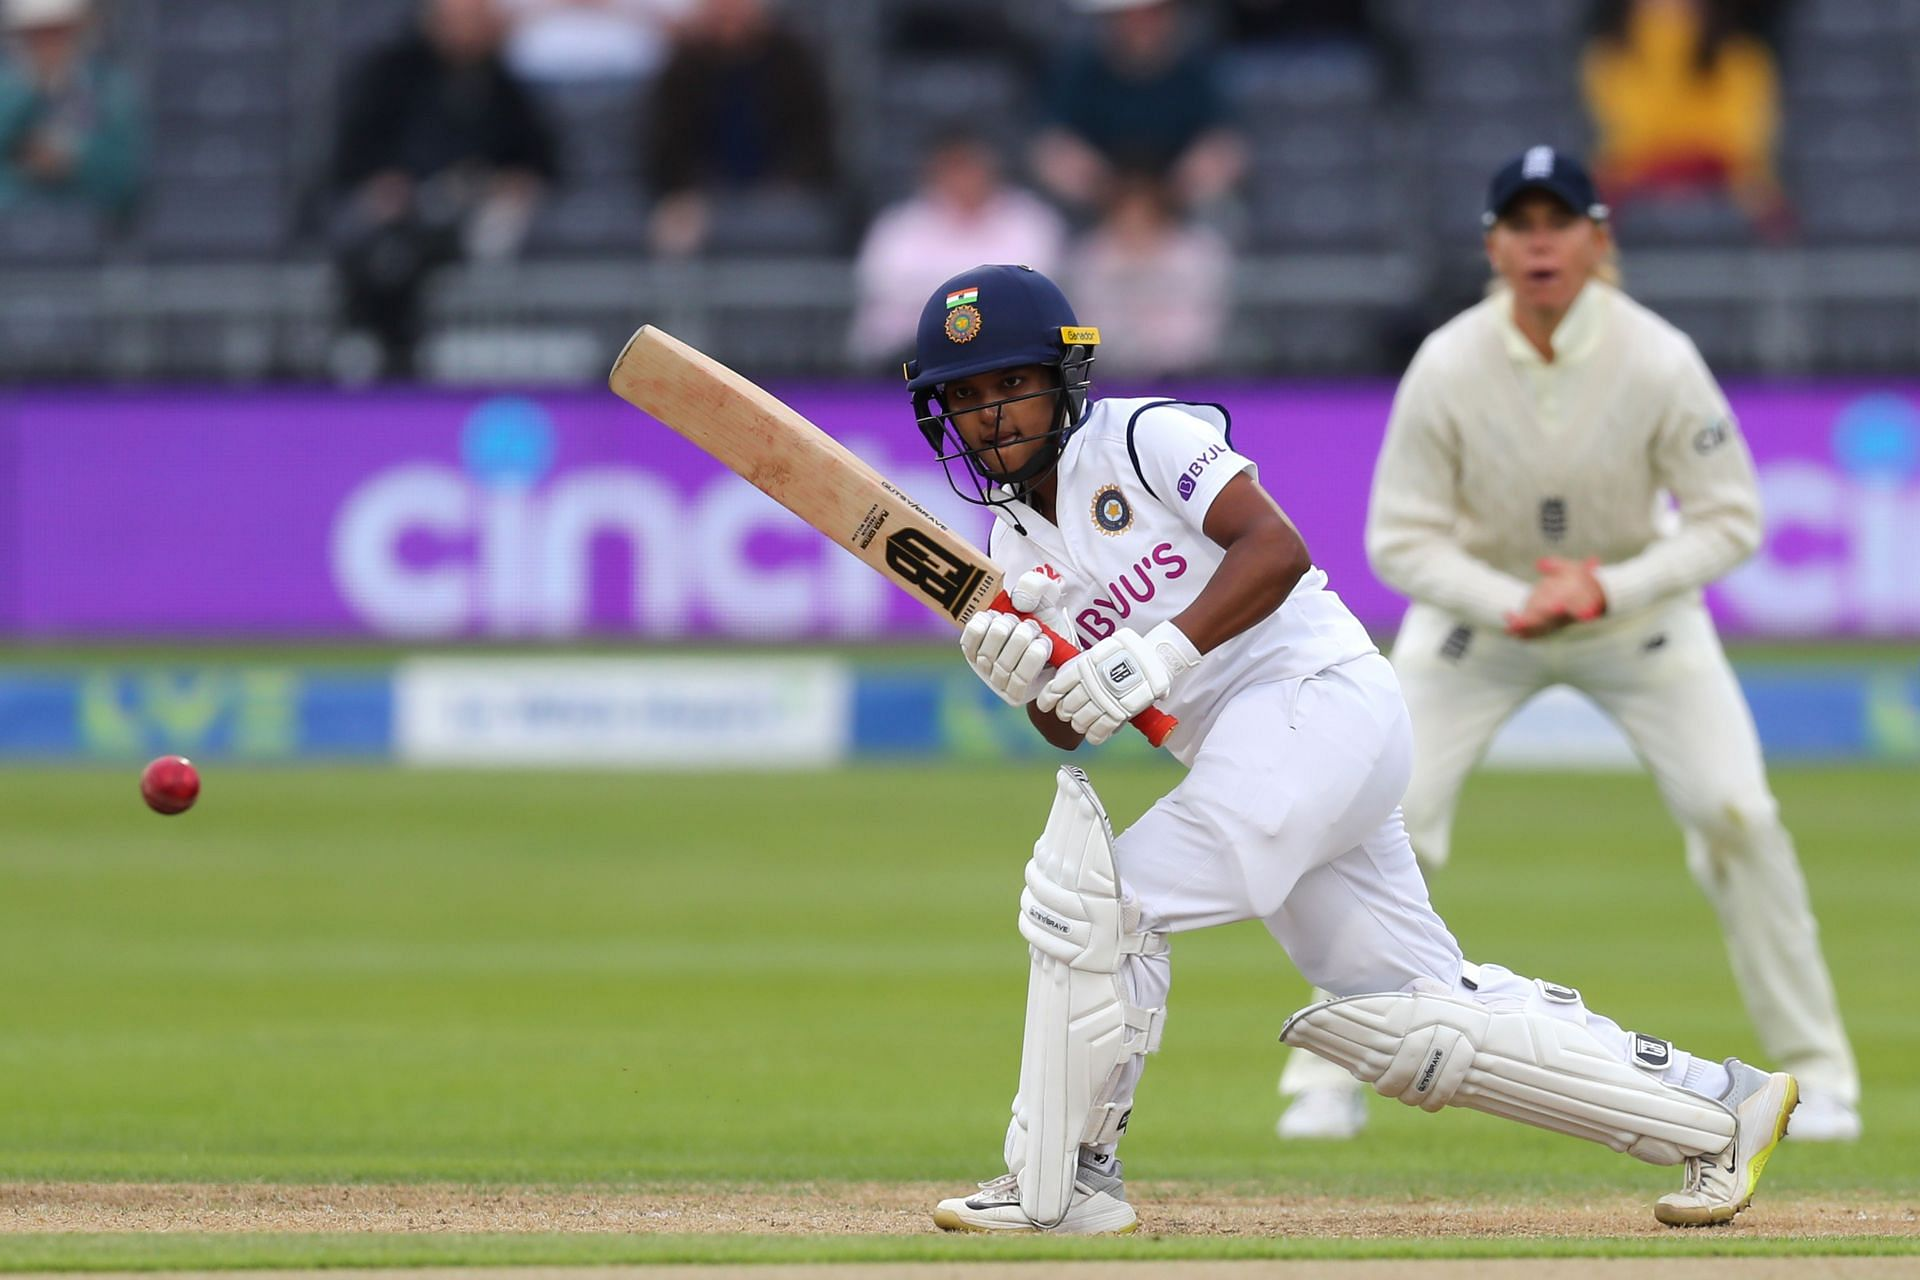 Indian batter Punam Raut in action against England.